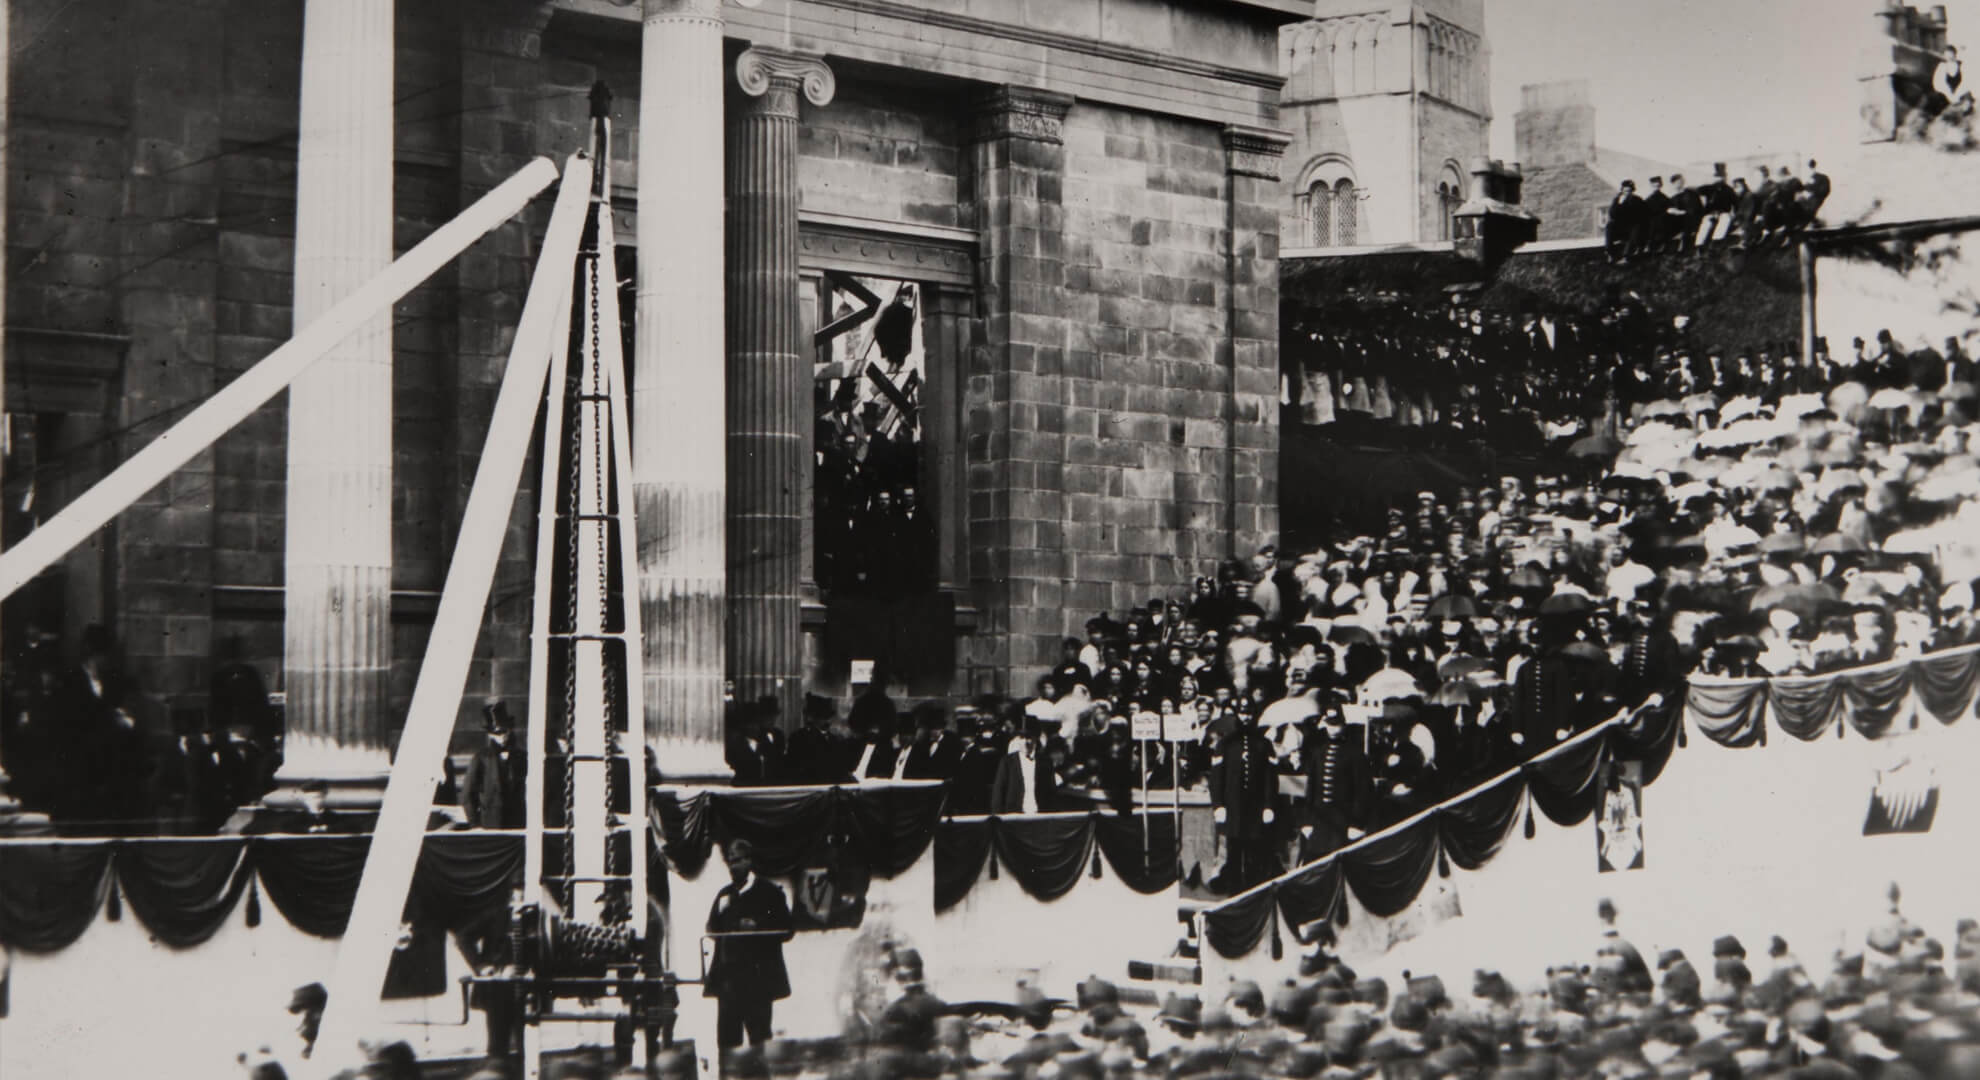 Photo of crowds gathered for the laying of the Museum's foundation stone, 1869